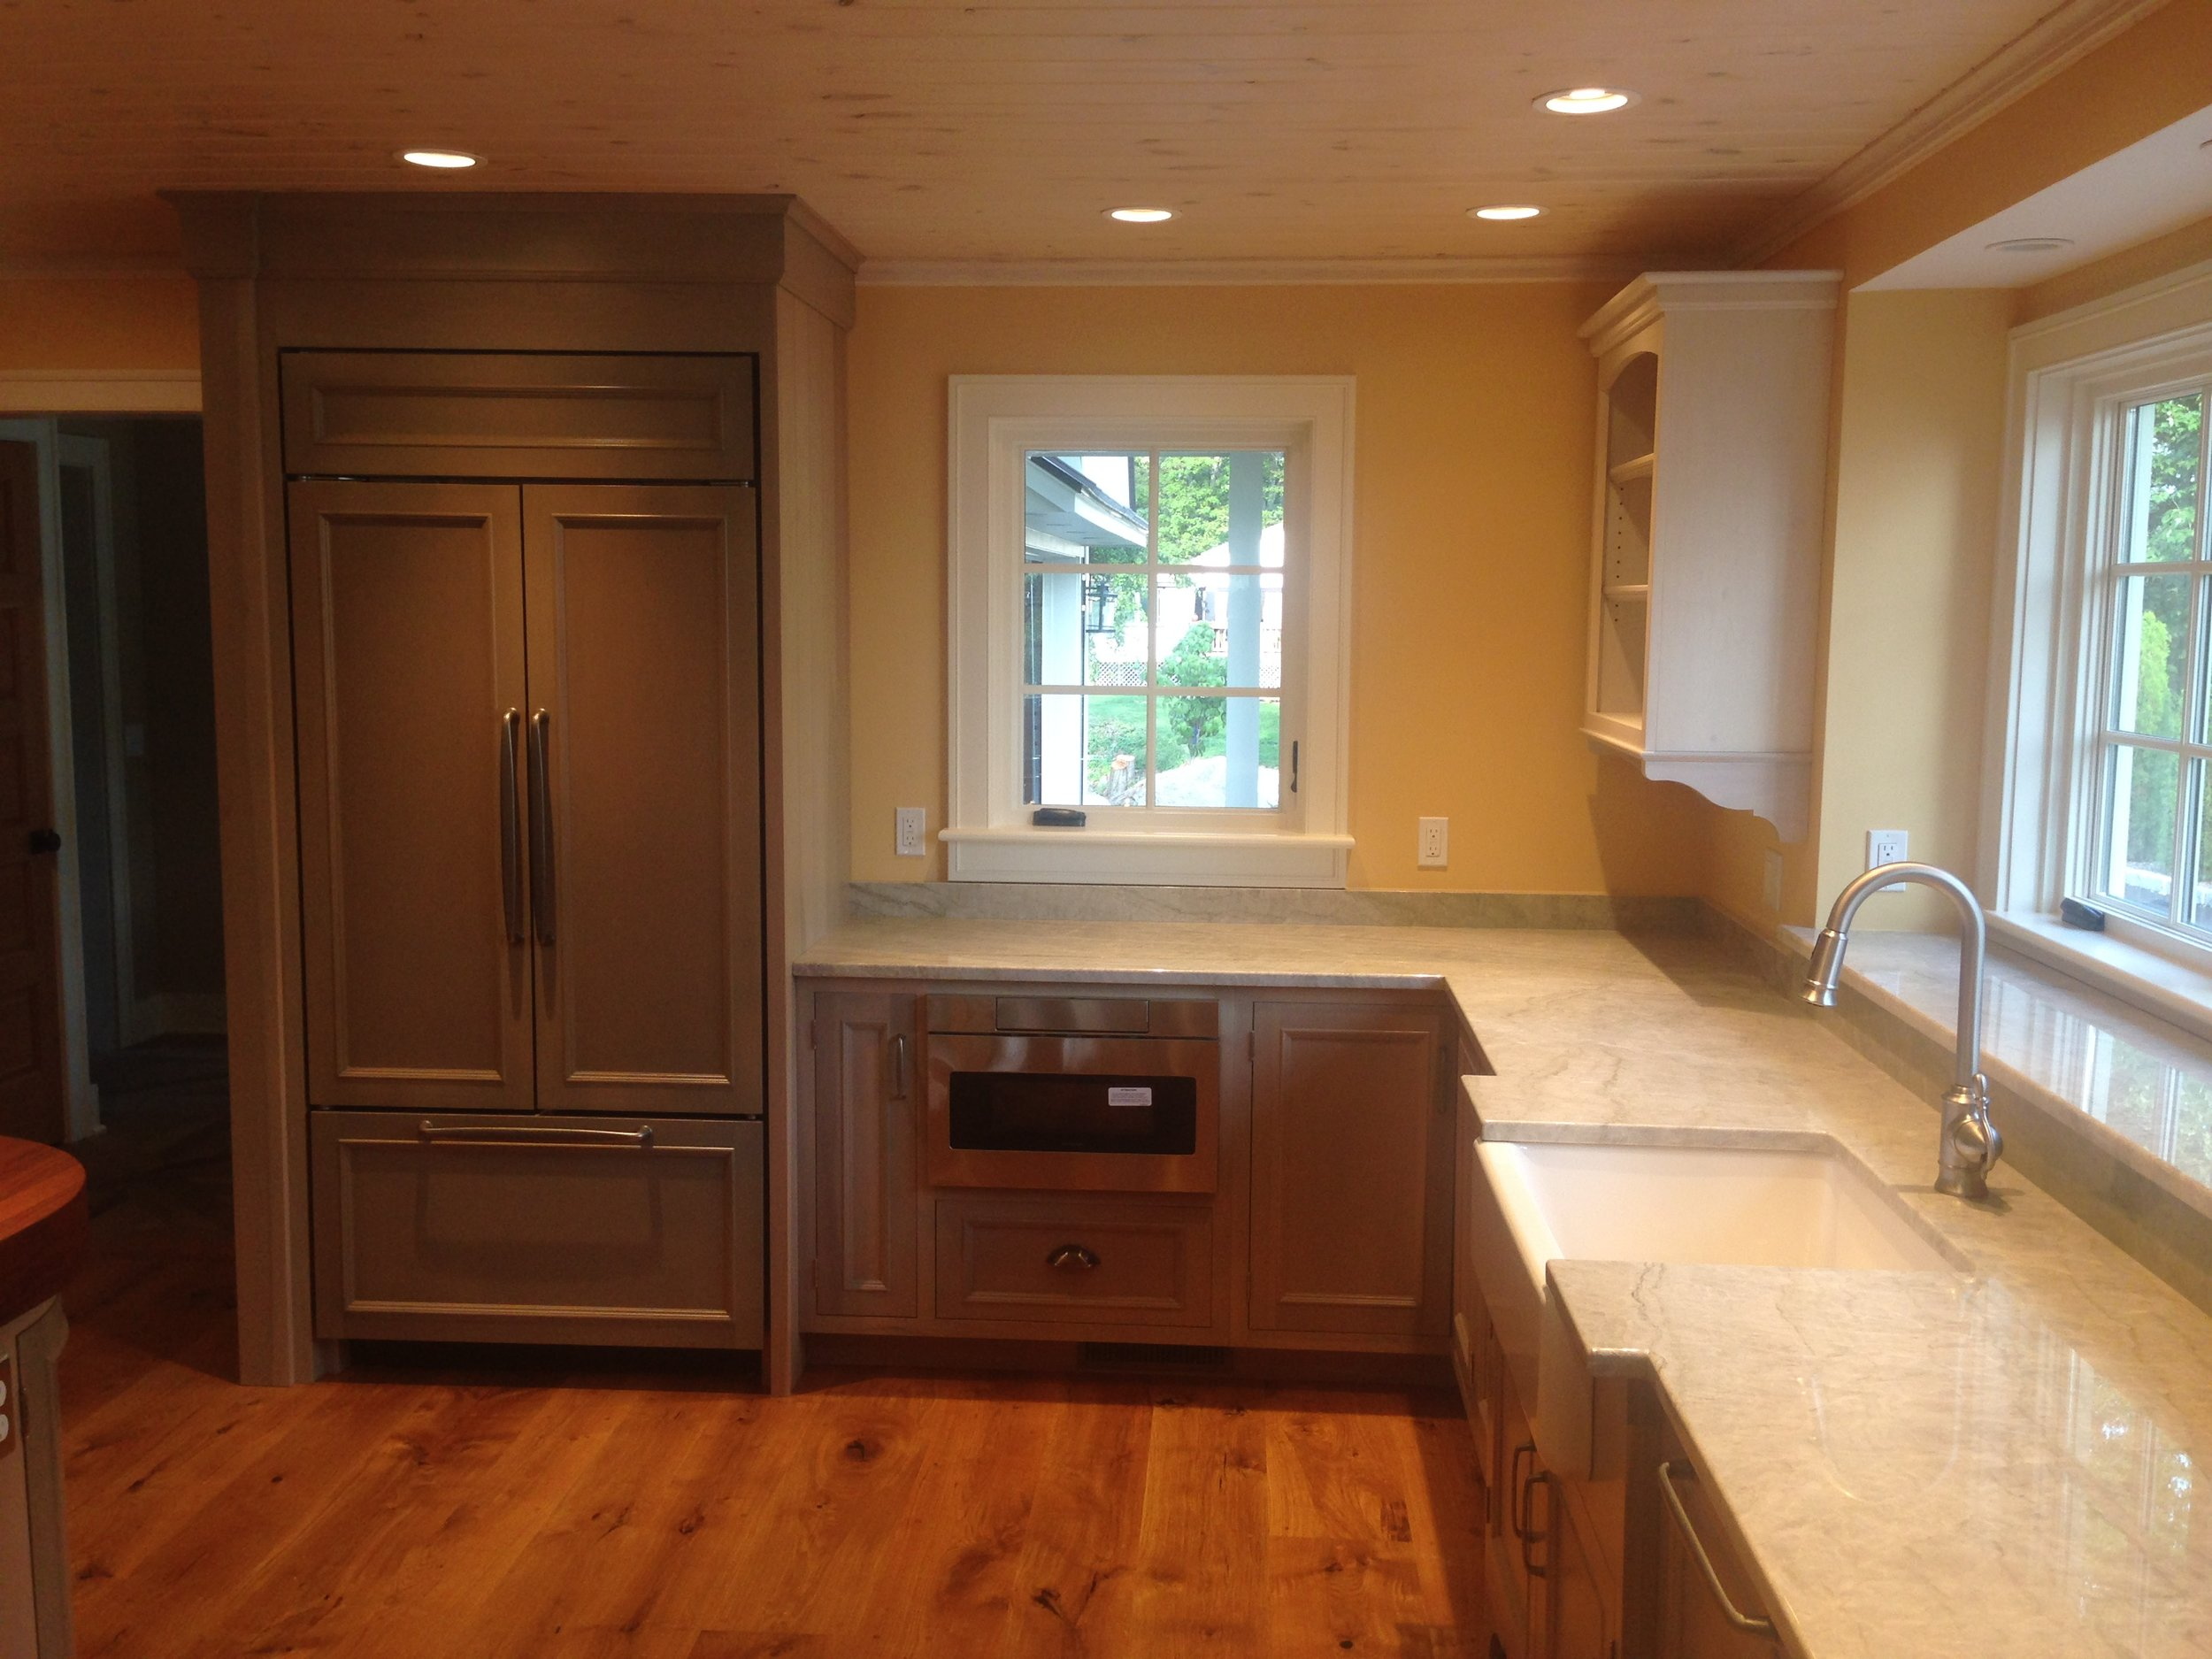 A Cottage Kitchen in Semi-Transparent Sage Lacquer, Quartzite Countertops, and Whitewashed Uppers 2.jpg